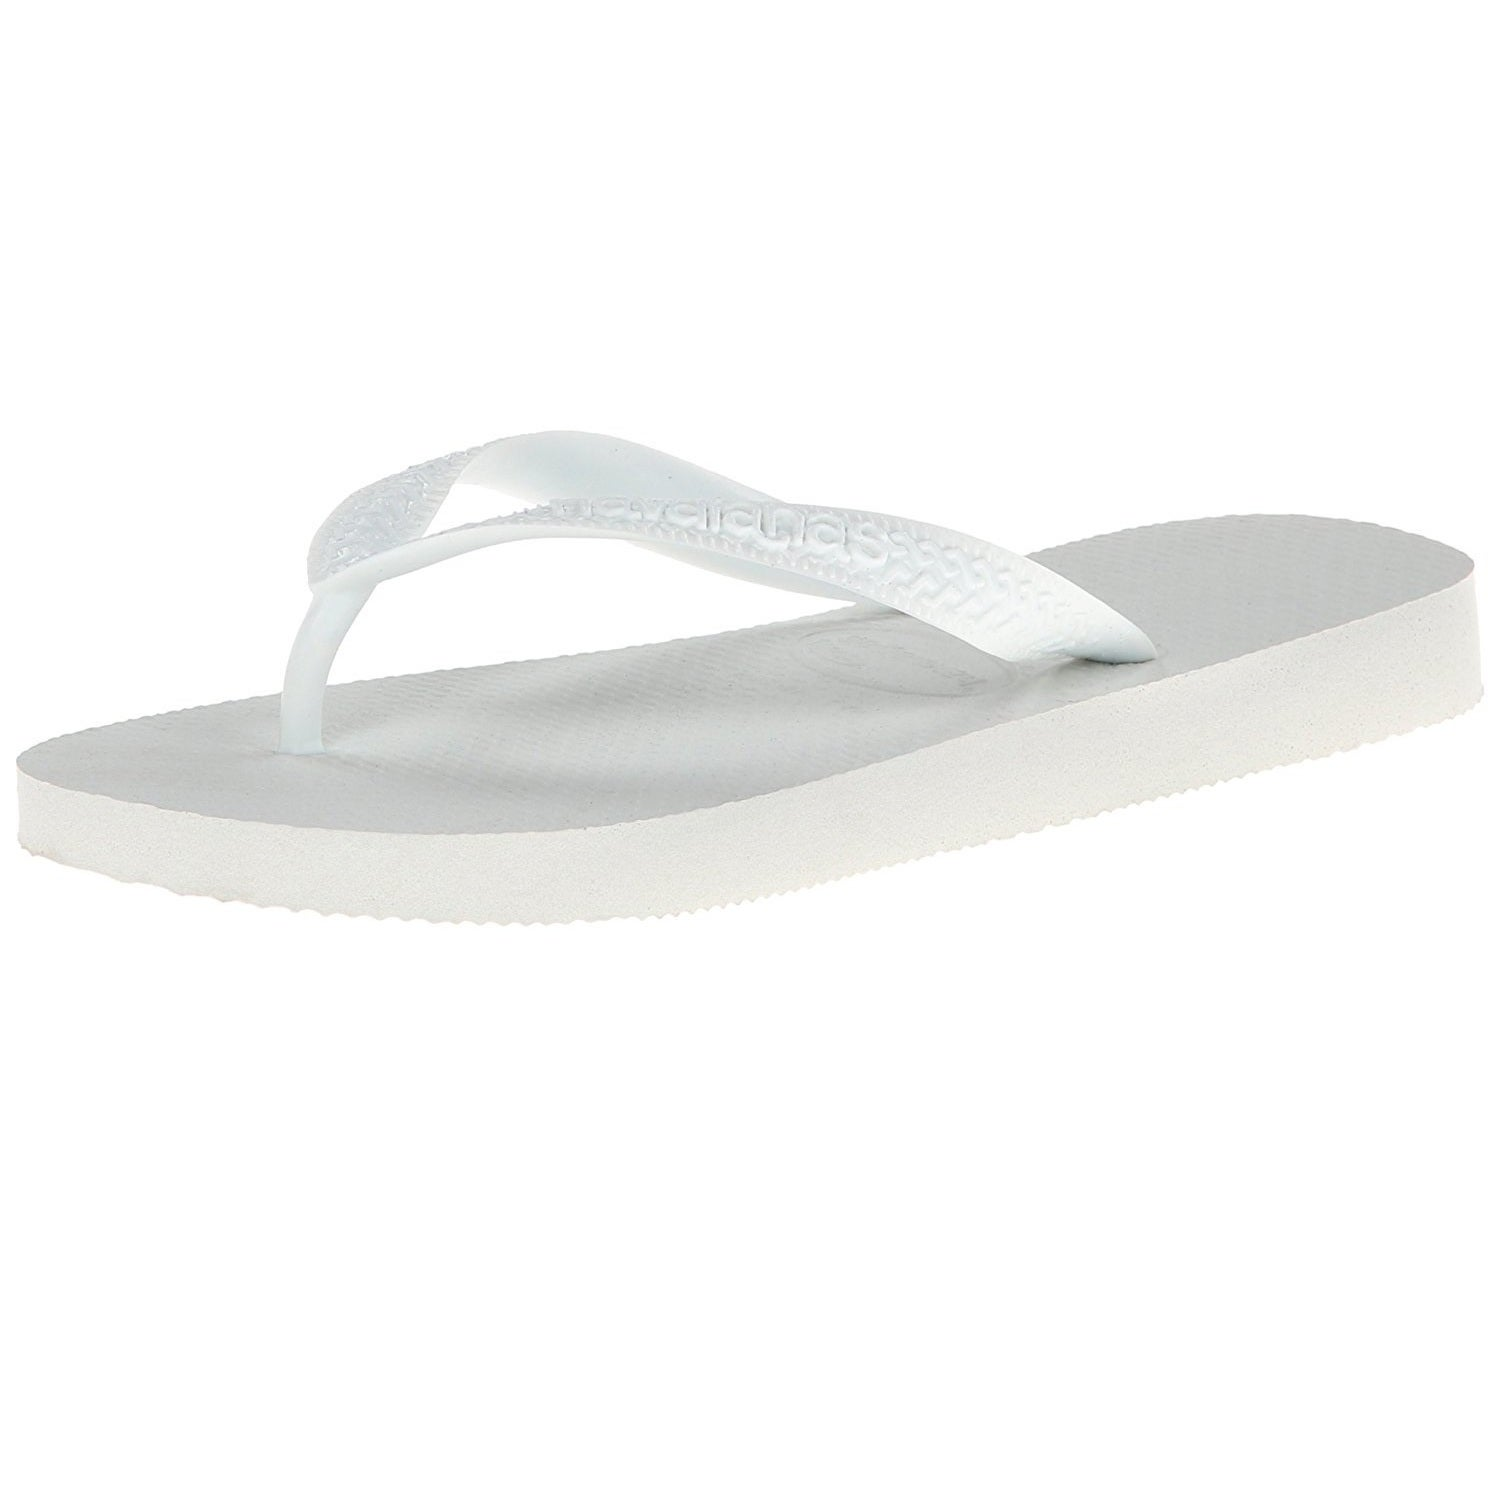 da905d1ac4f9 Shop HAVAIANAS Kids Top Flip Flop 33 34 BR (3-4 M US Big Kid) White - Free  Shipping On Orders Over  45 - Overstock - 19433802